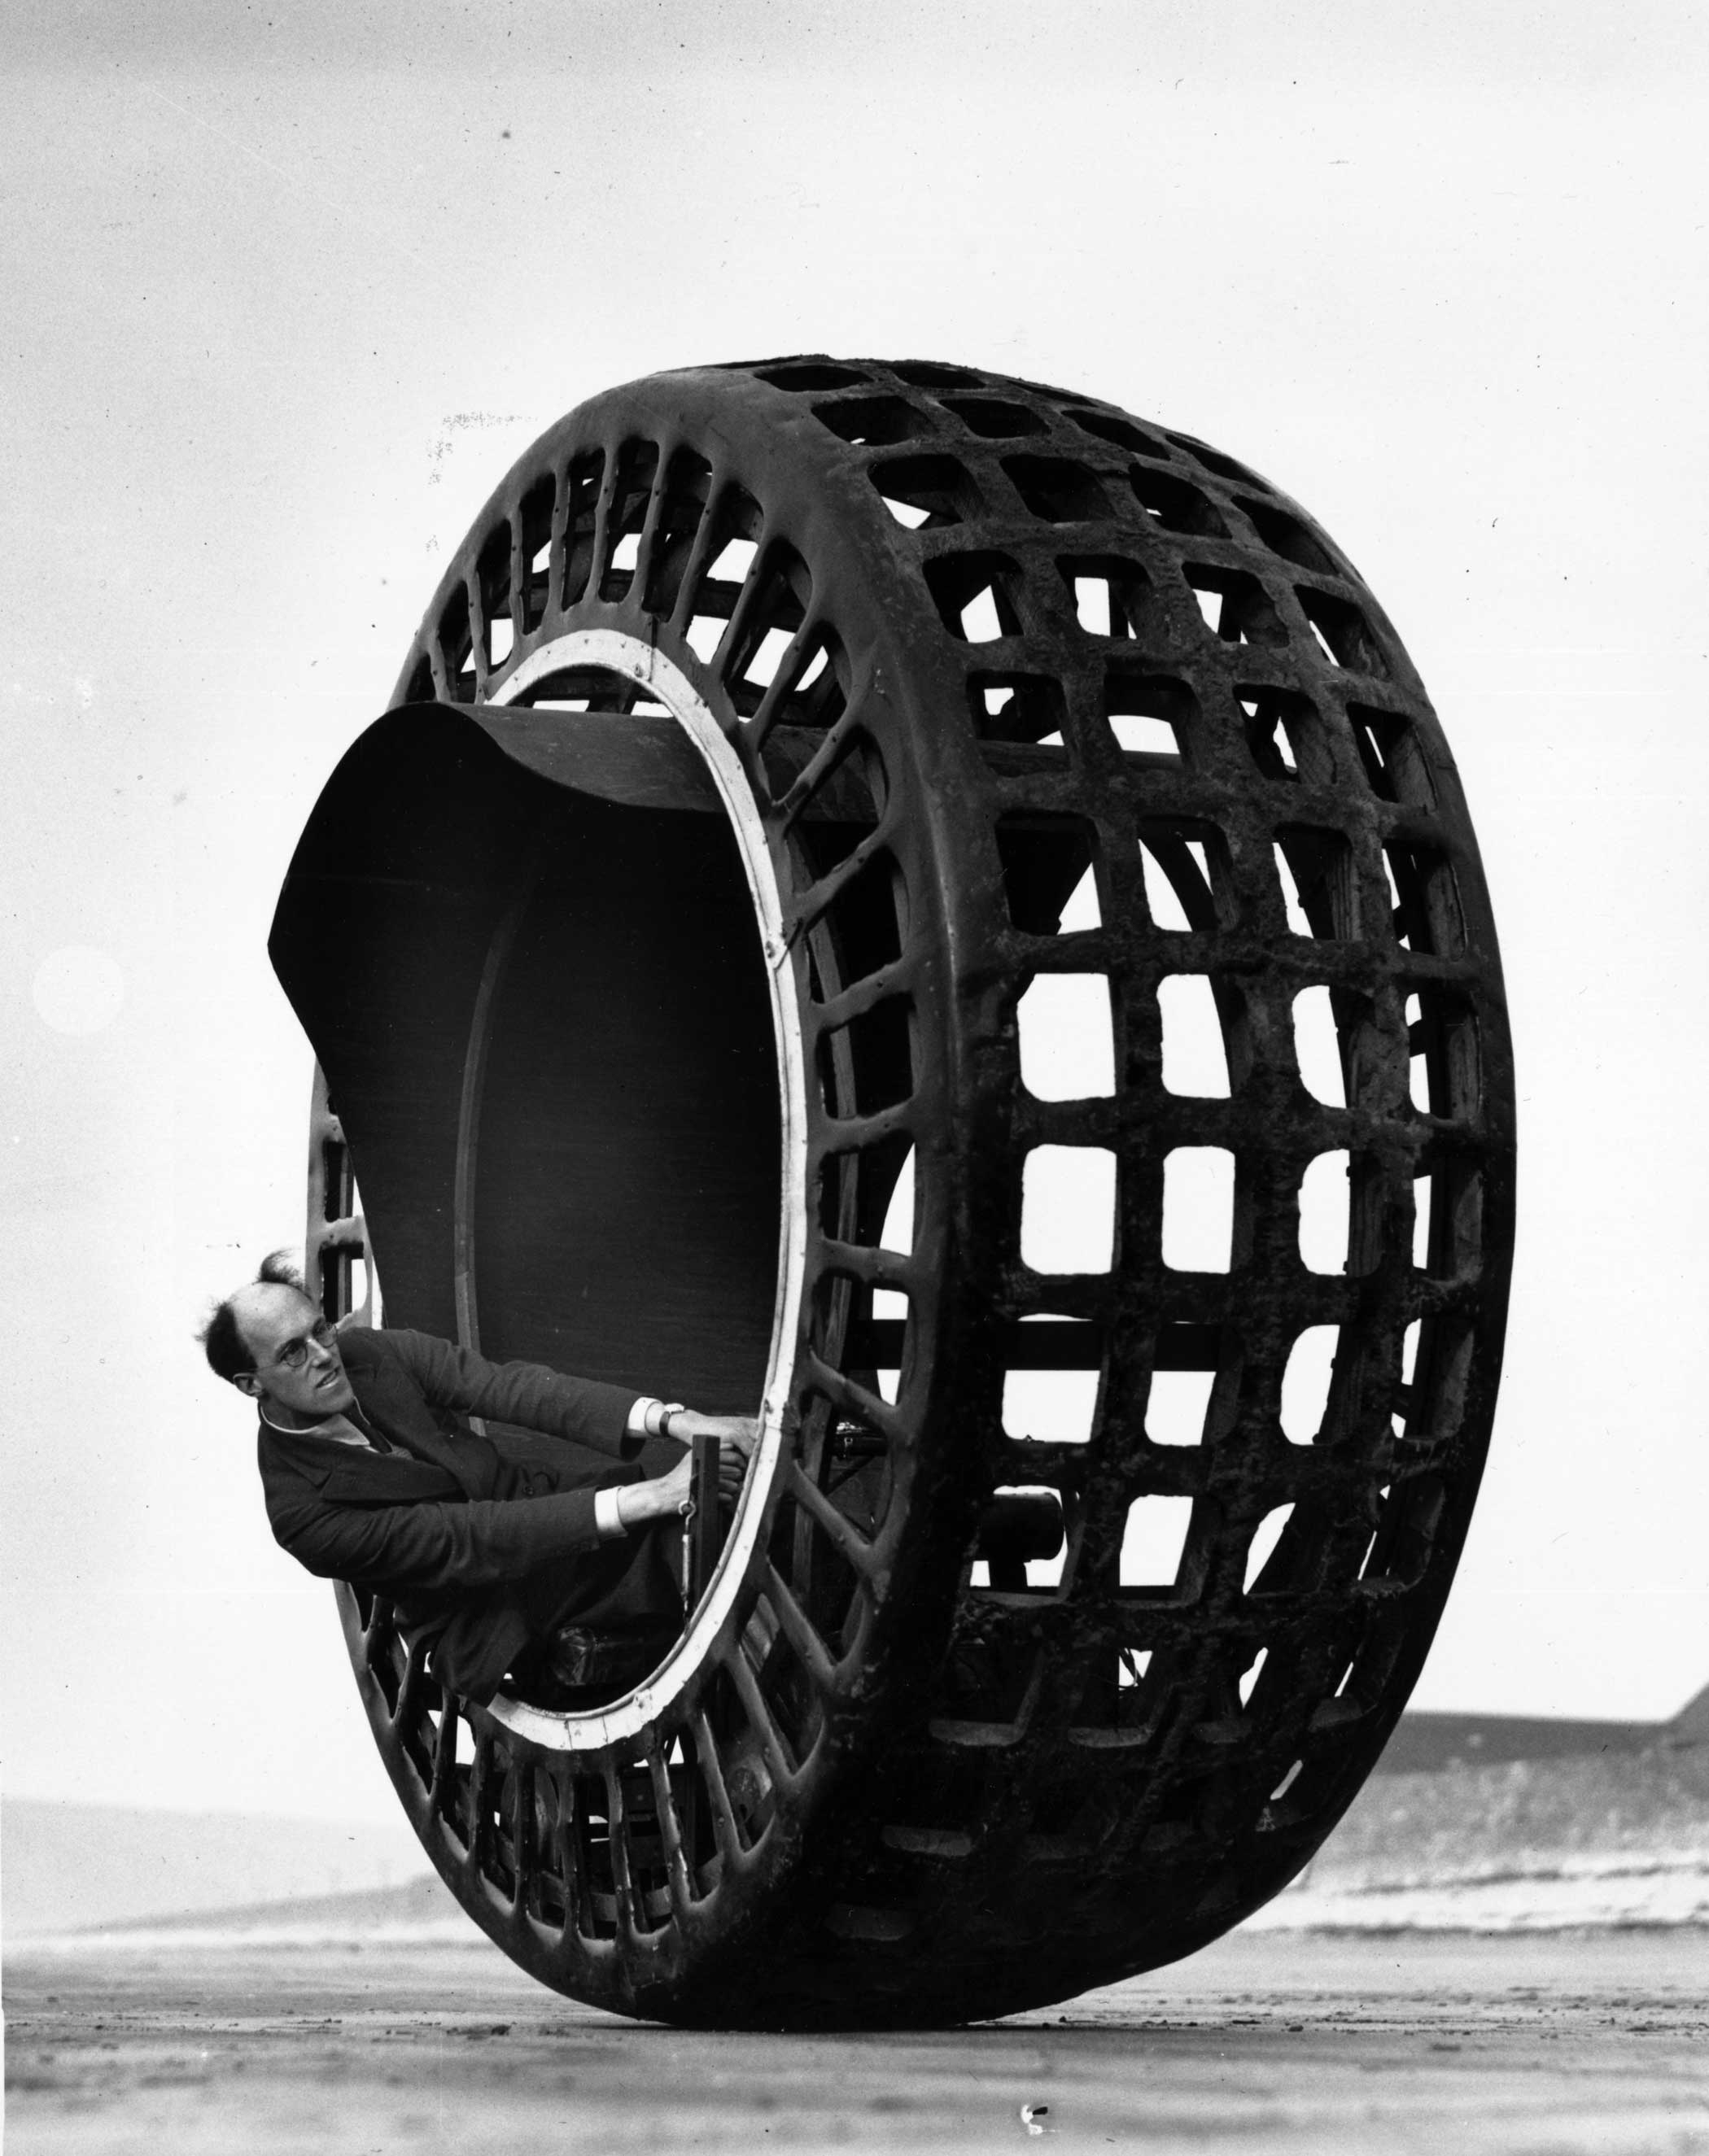 The Dynasphere, an electrically-driven wheel, capable of speeds of 30mph, being tested on the beach at Weston Super Mare by Mr J. A. Purves of Taunton, who invented the machine with his son.